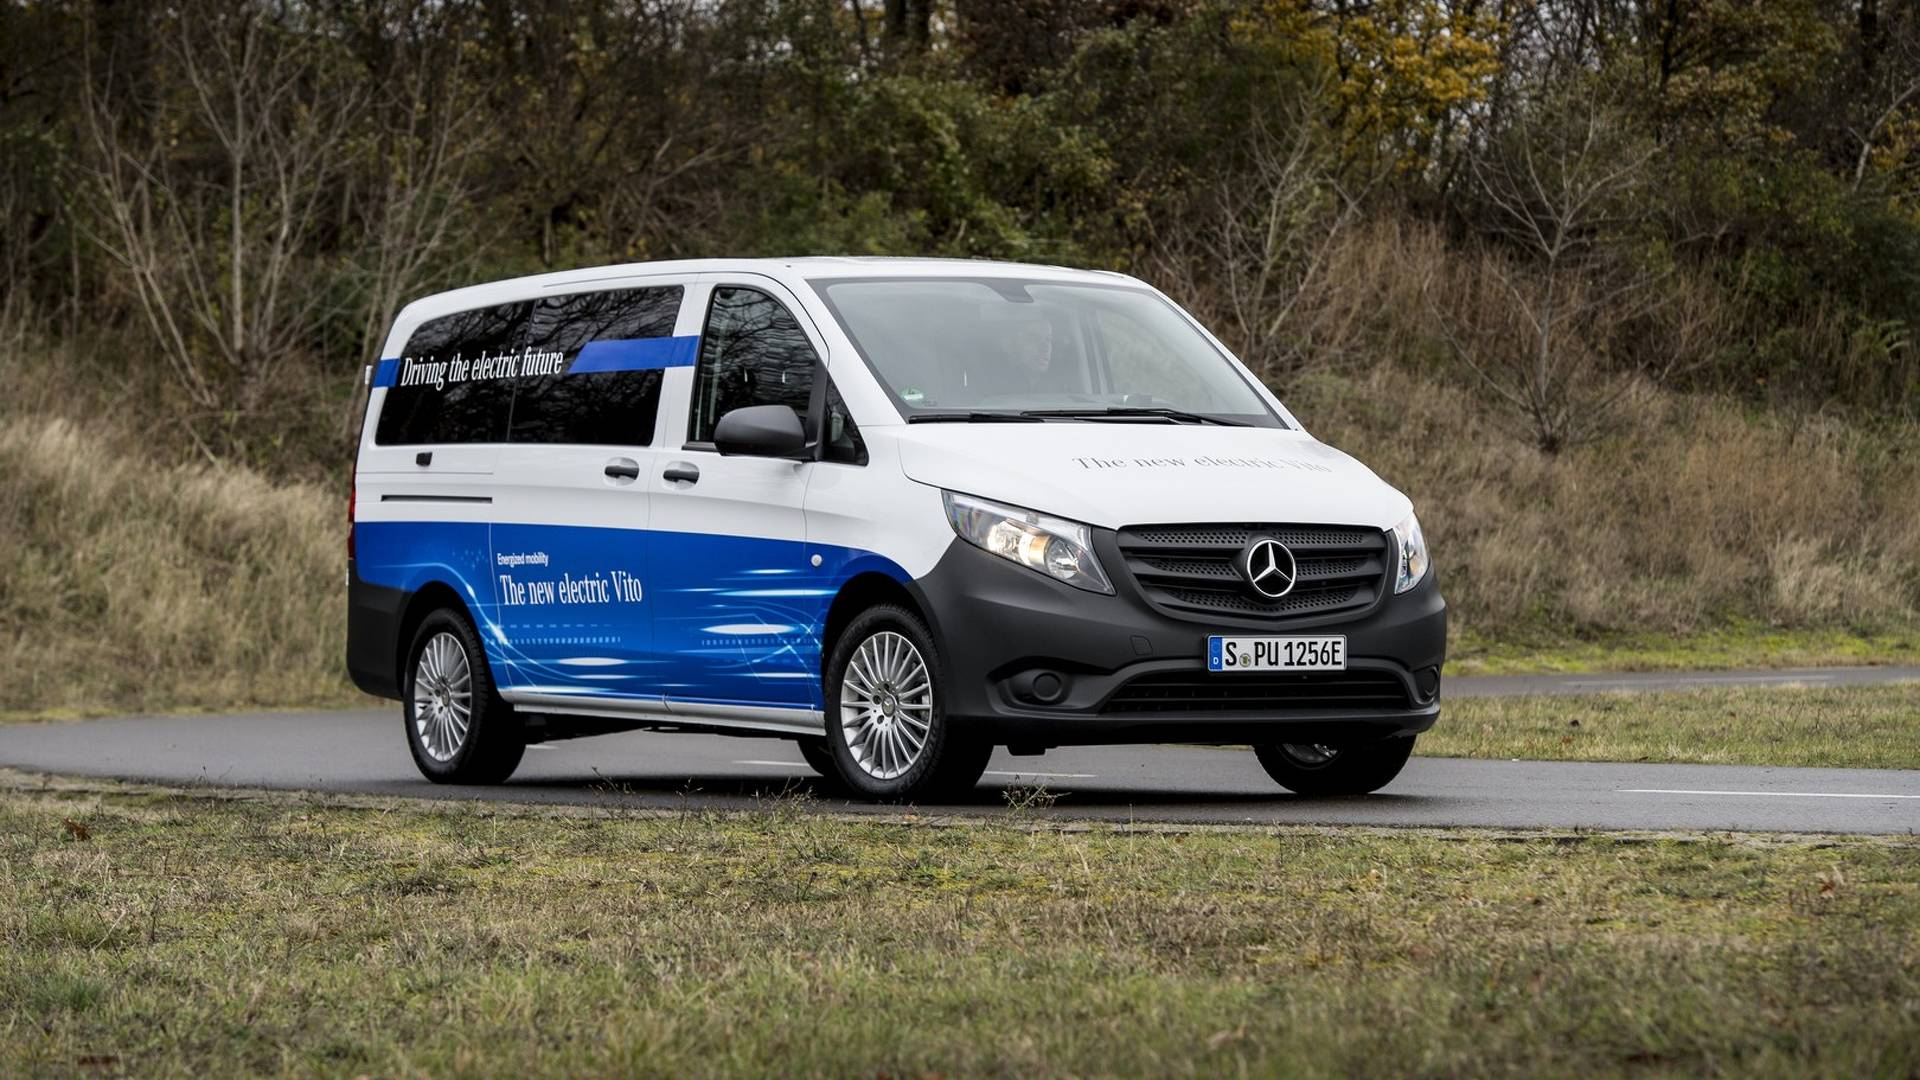 2018 Mercedes Benz Evito Is A Huge Upgrade From The Vito E Cell